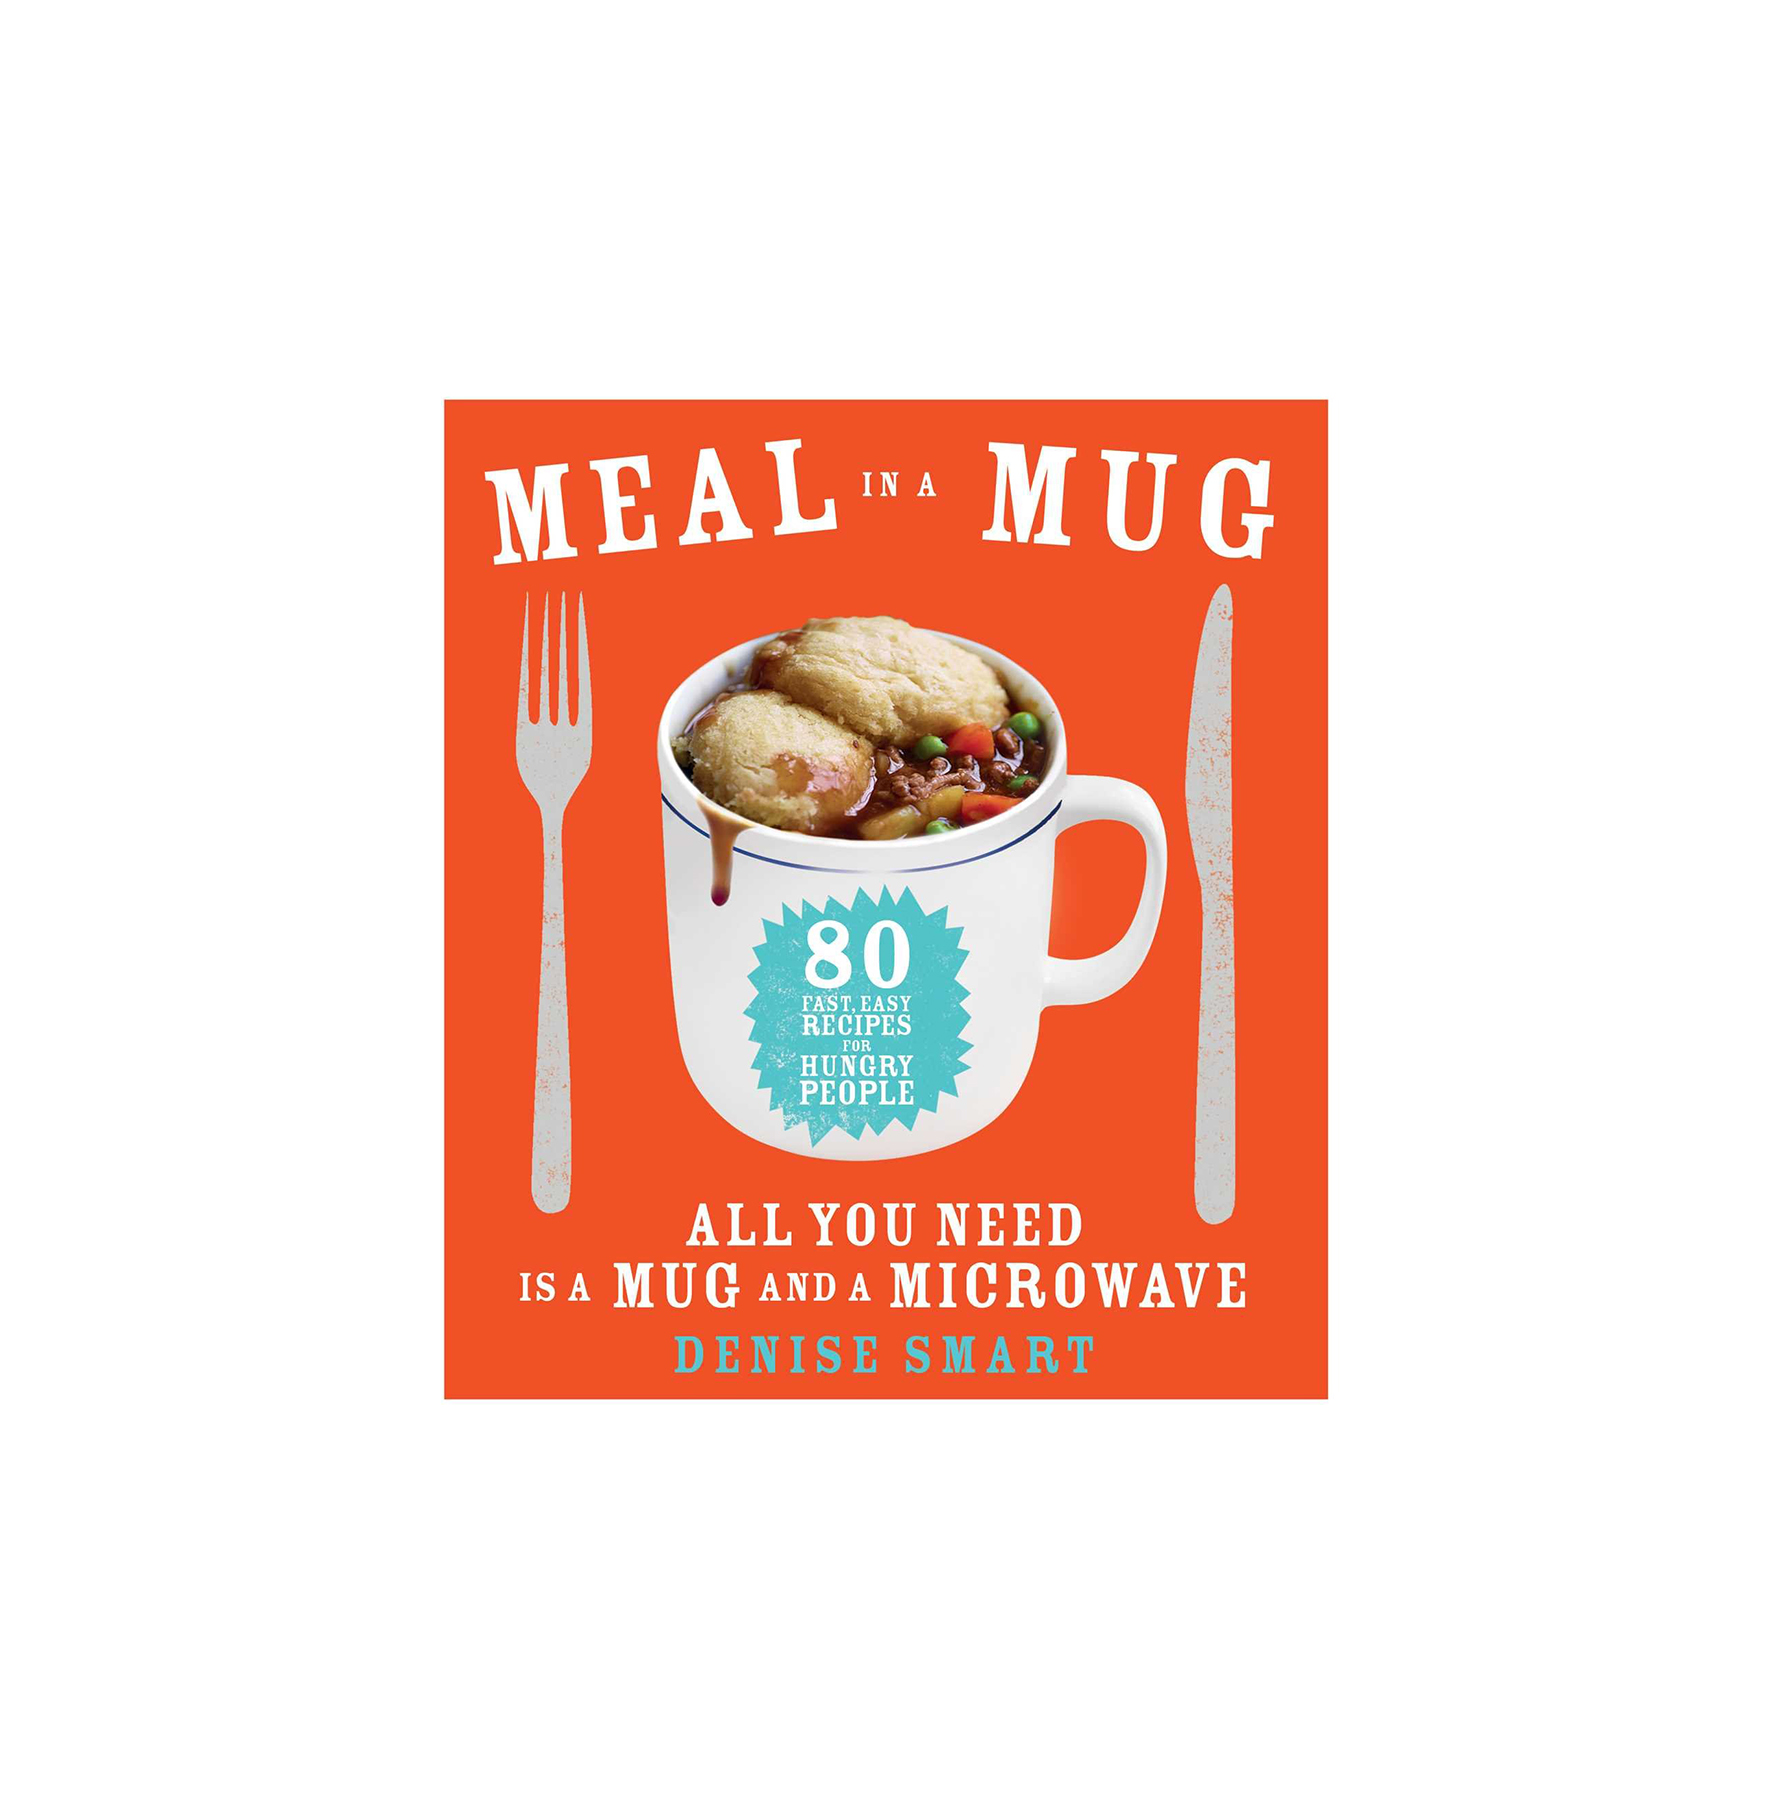 Meal in a Mug: 80 Fast, Easy Recipes for Hungry People